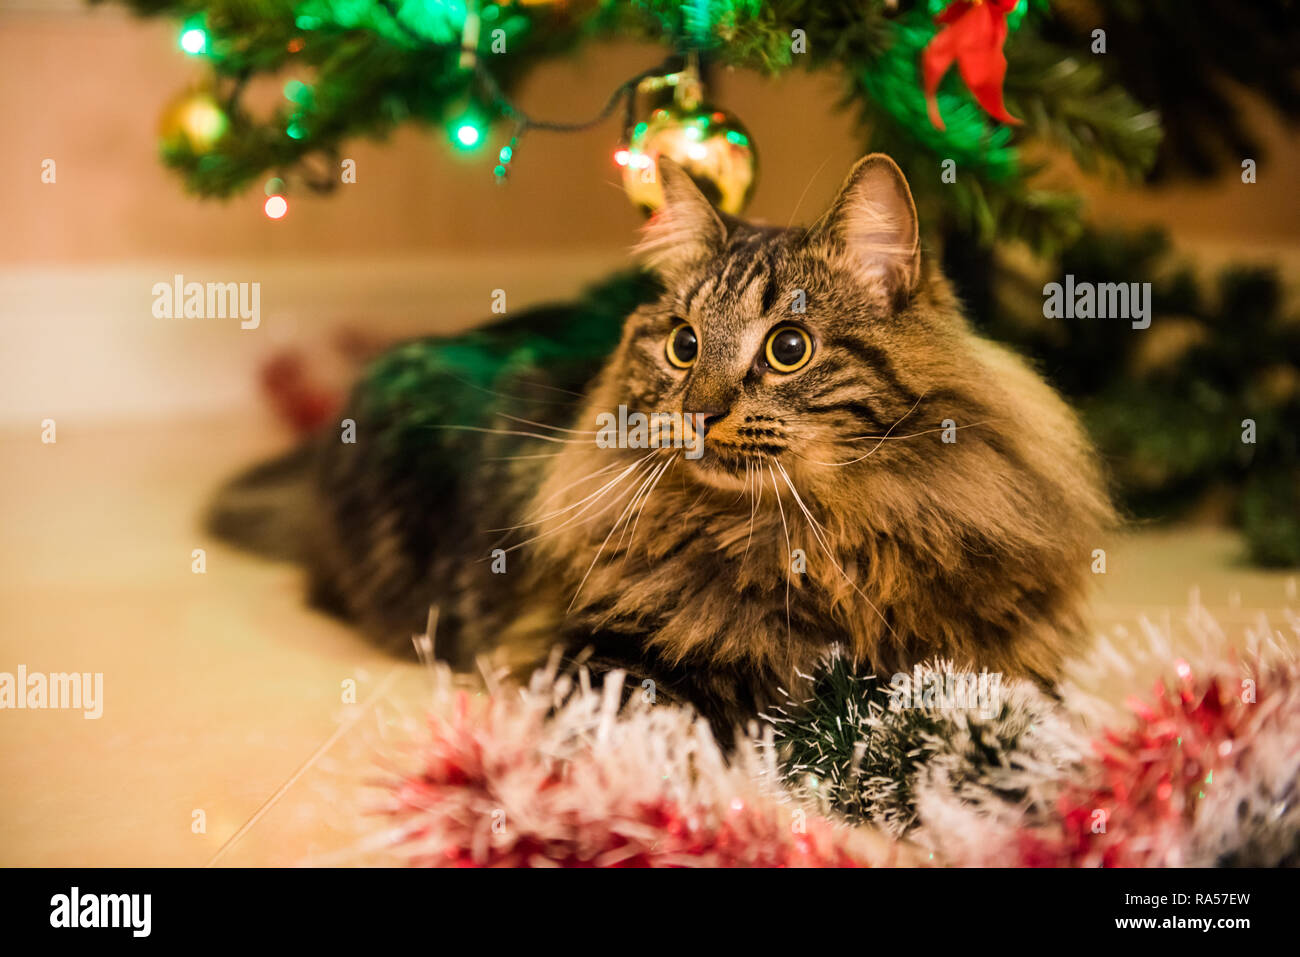 Christmas Pranks.Funny Norwegian Cat Under Christmas Tree On New Year Cat